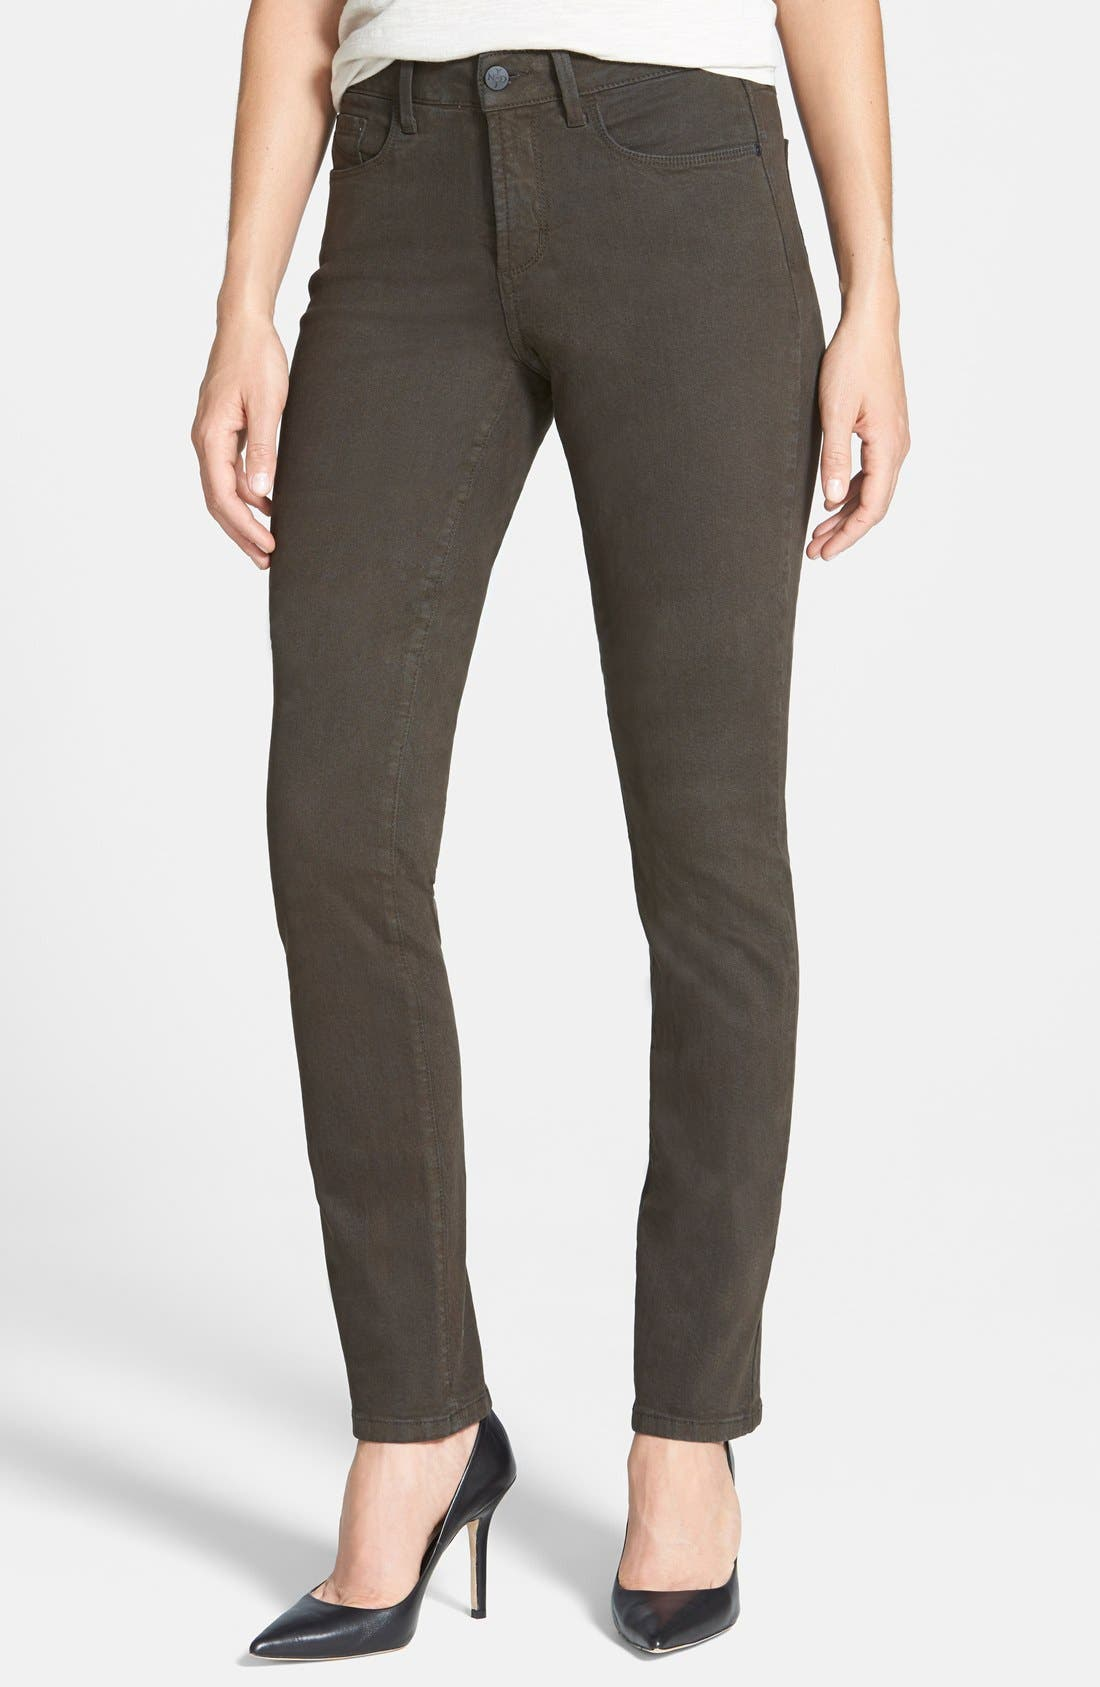 Alternate Image 1 Selected - NYDJ Sheri Colored Stretch Skinny Jeans (Petite)